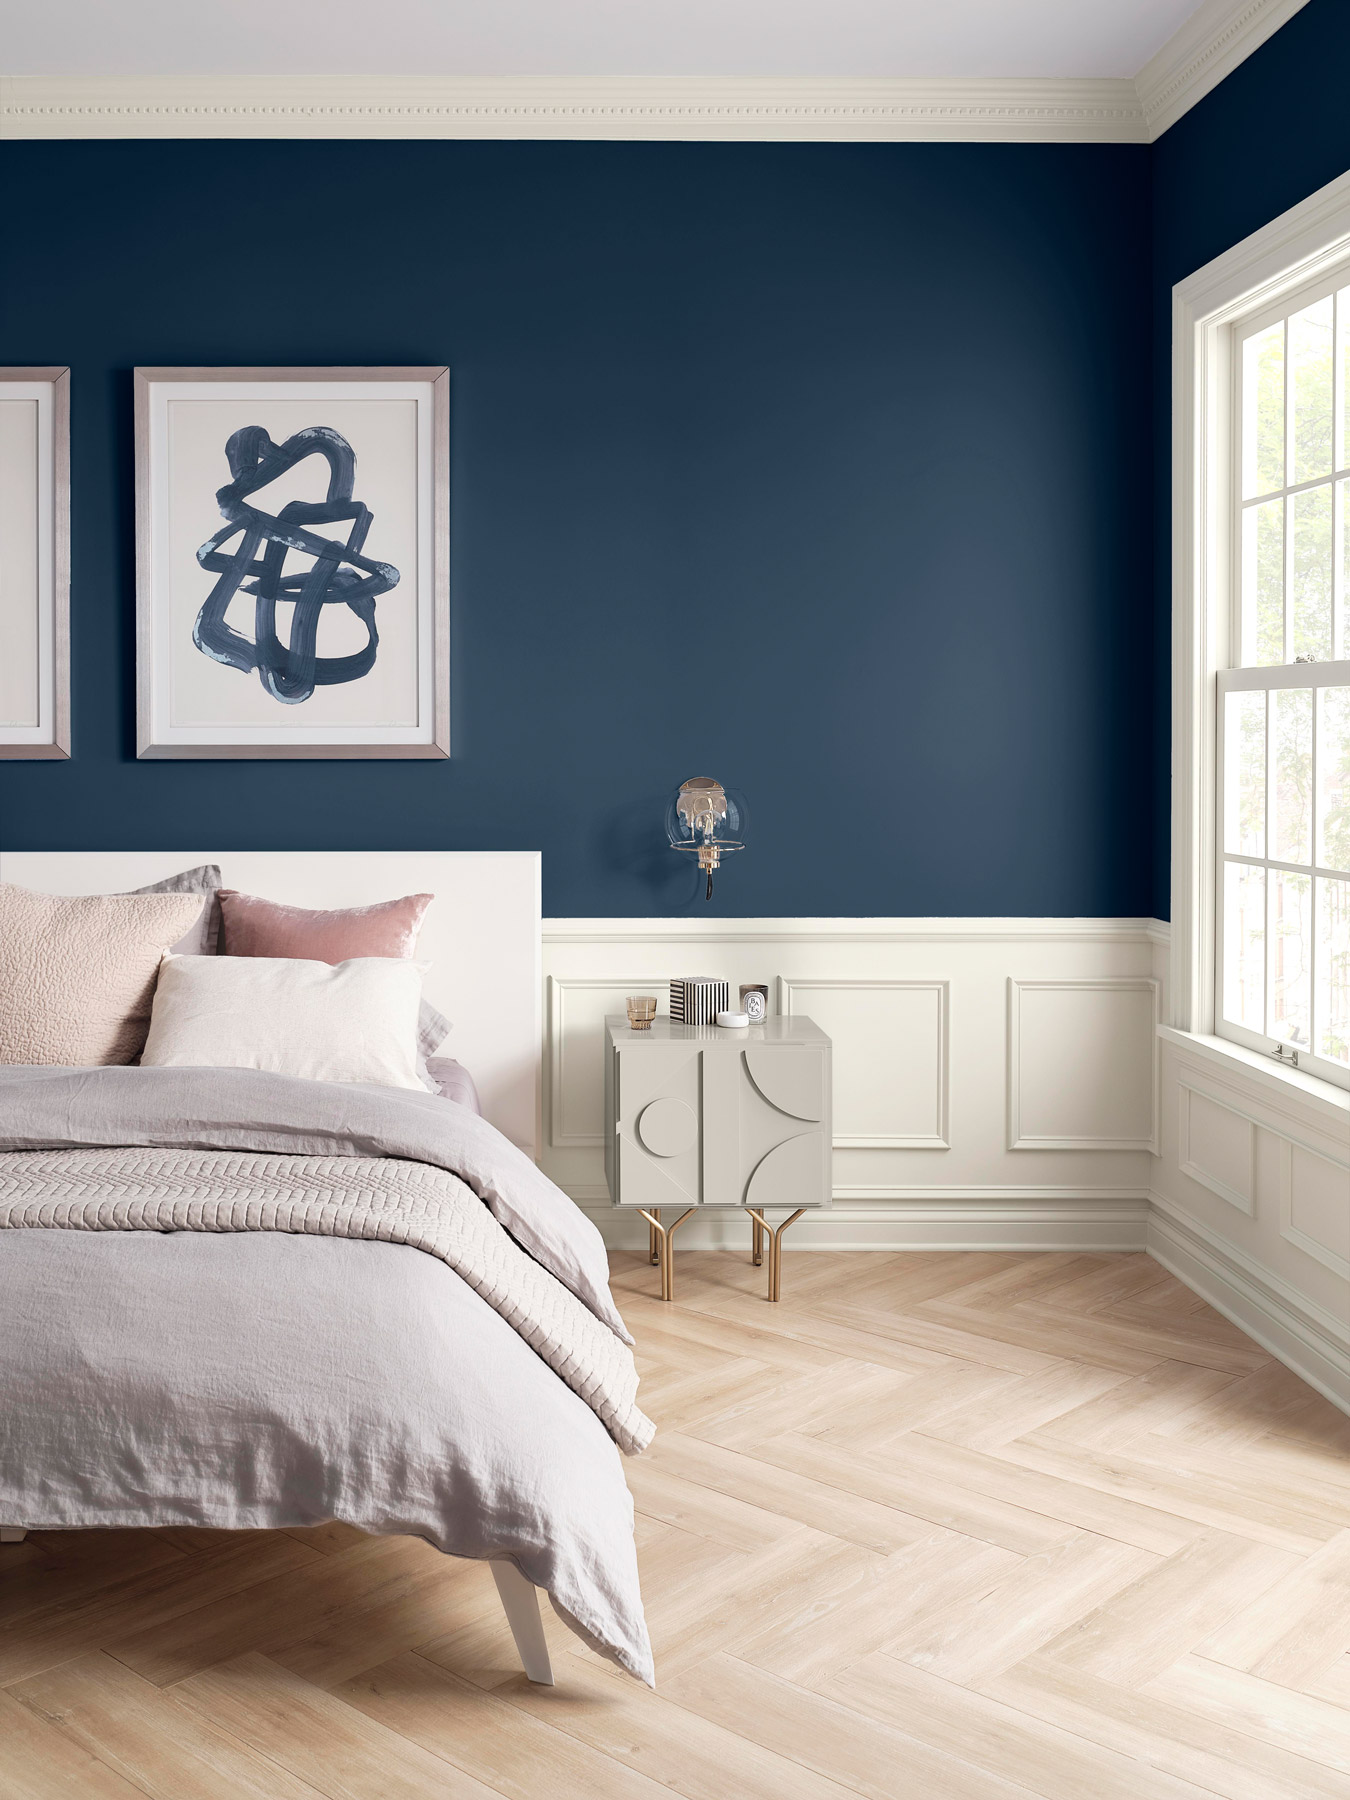 Sherwin-Williams color of the year 2020 - naval bedroom wall paint